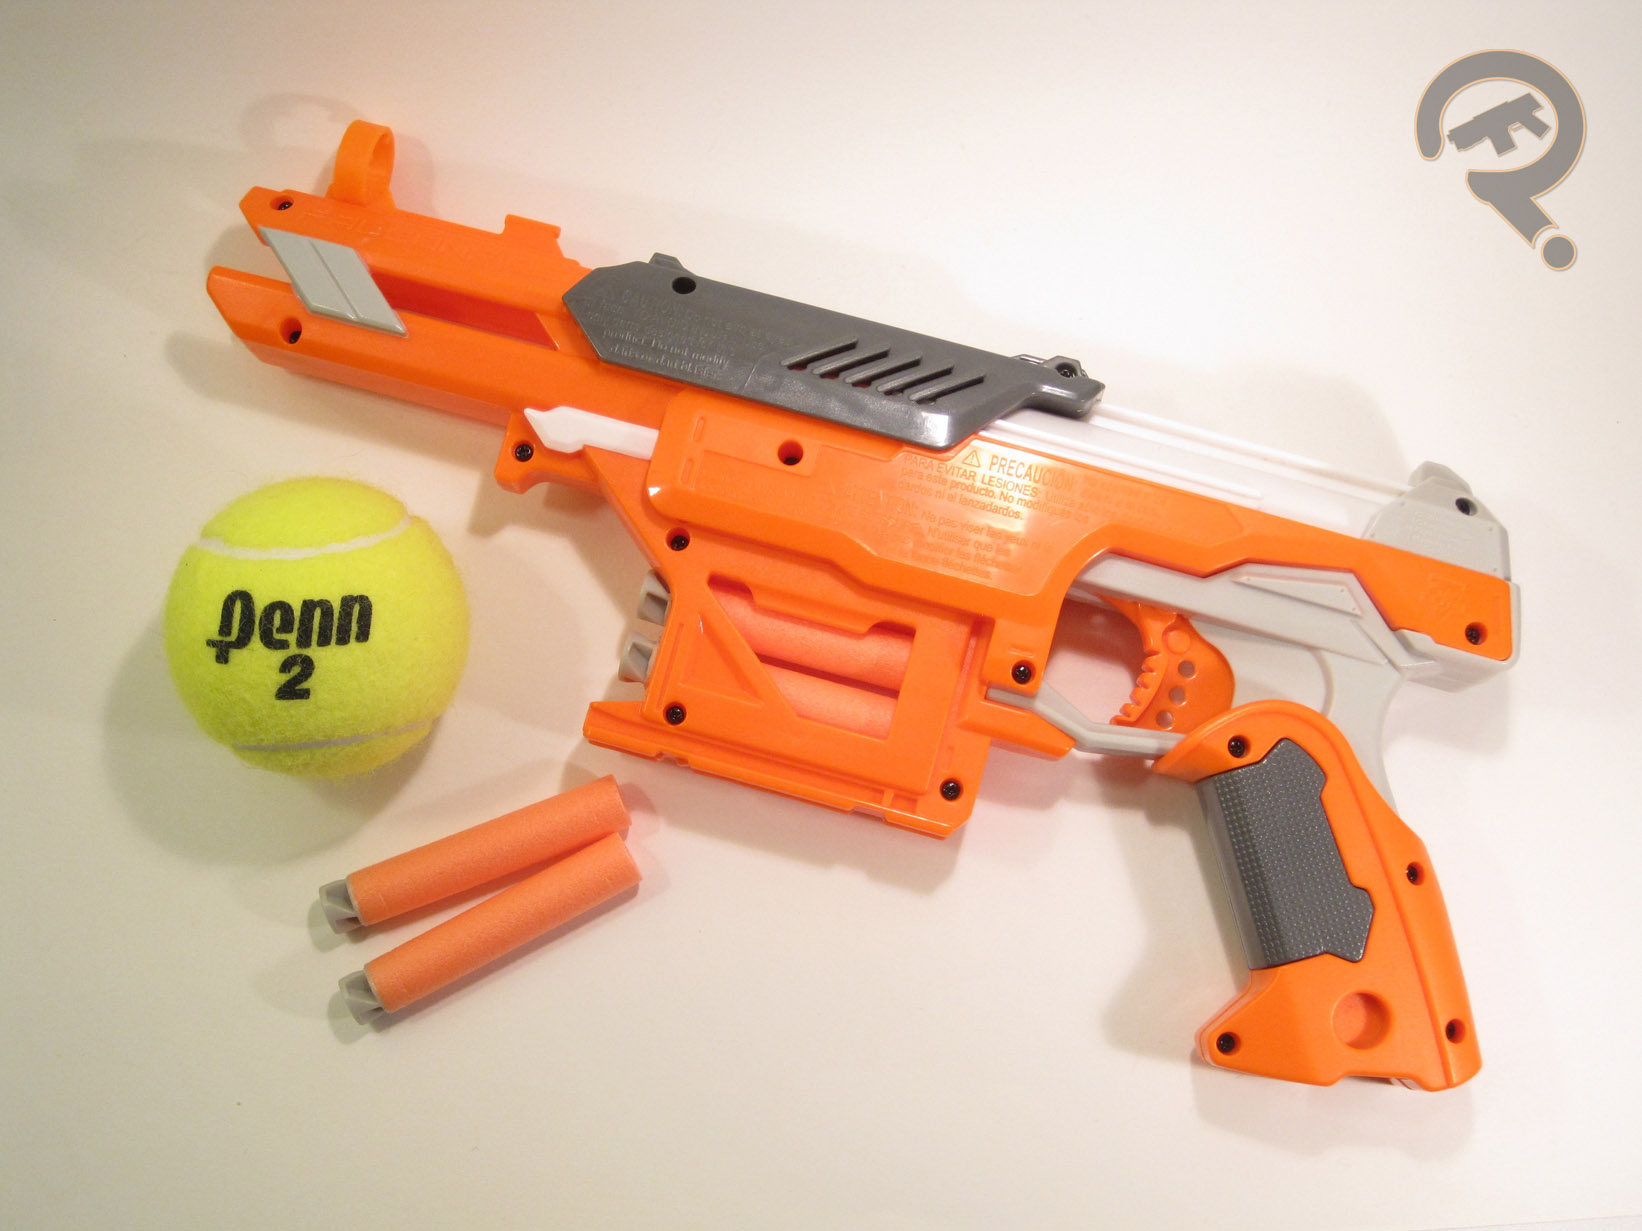 ... Nerf will cook up for the series. If they stick with the same naming  convention, I'm sure we can all look forward to the Eagleshot, Ospreyblast,  ...